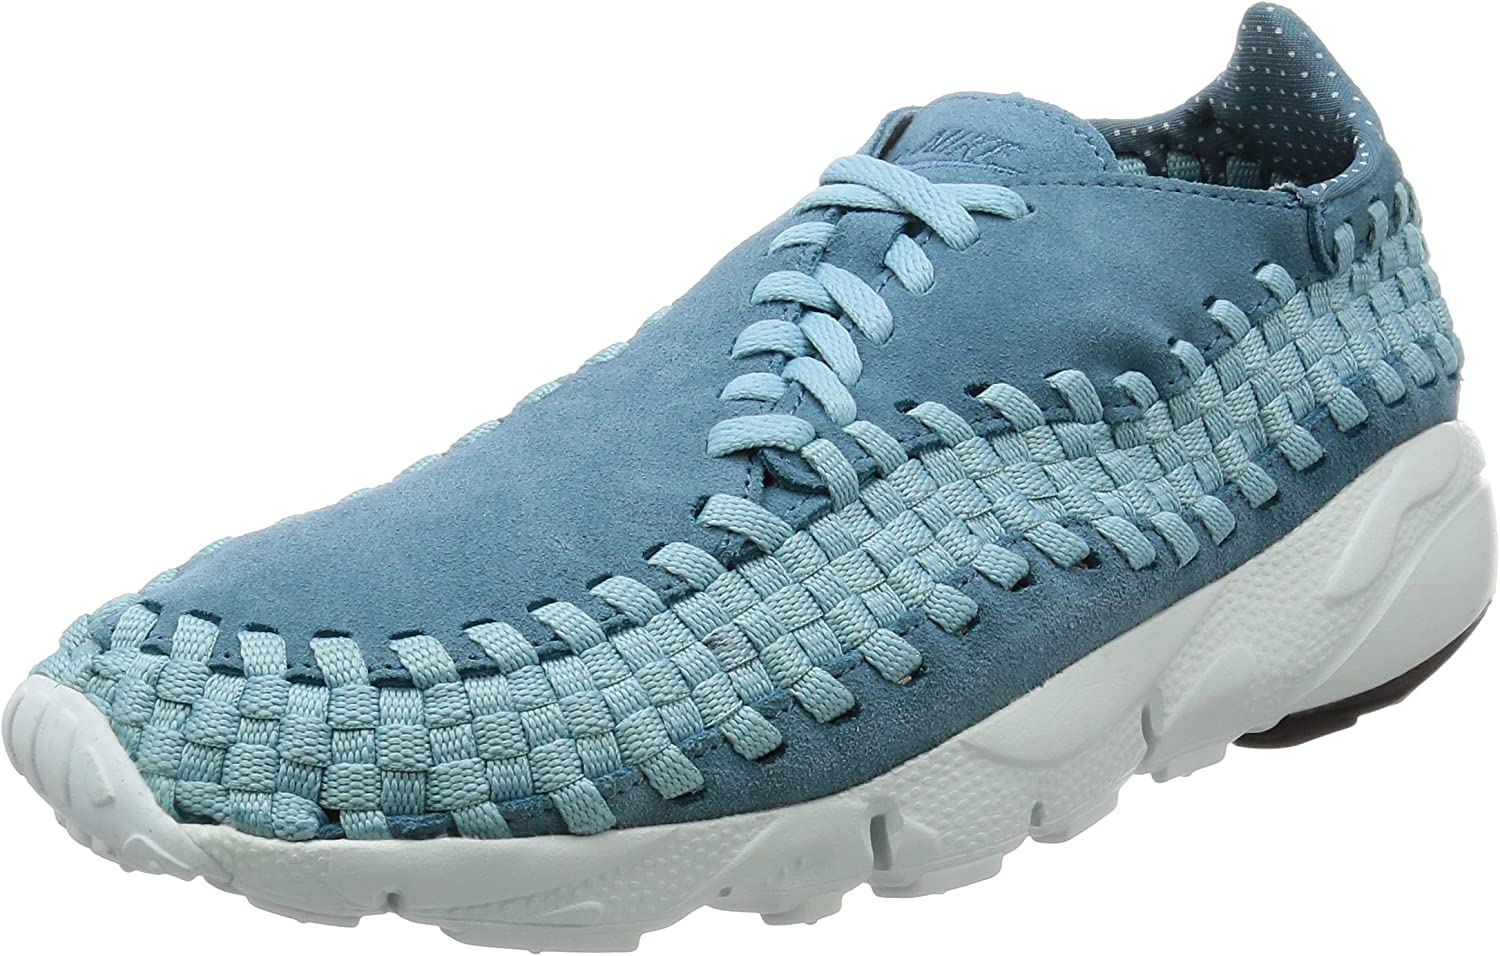 NIKE Air Footscape Woven NM Men's Trainer